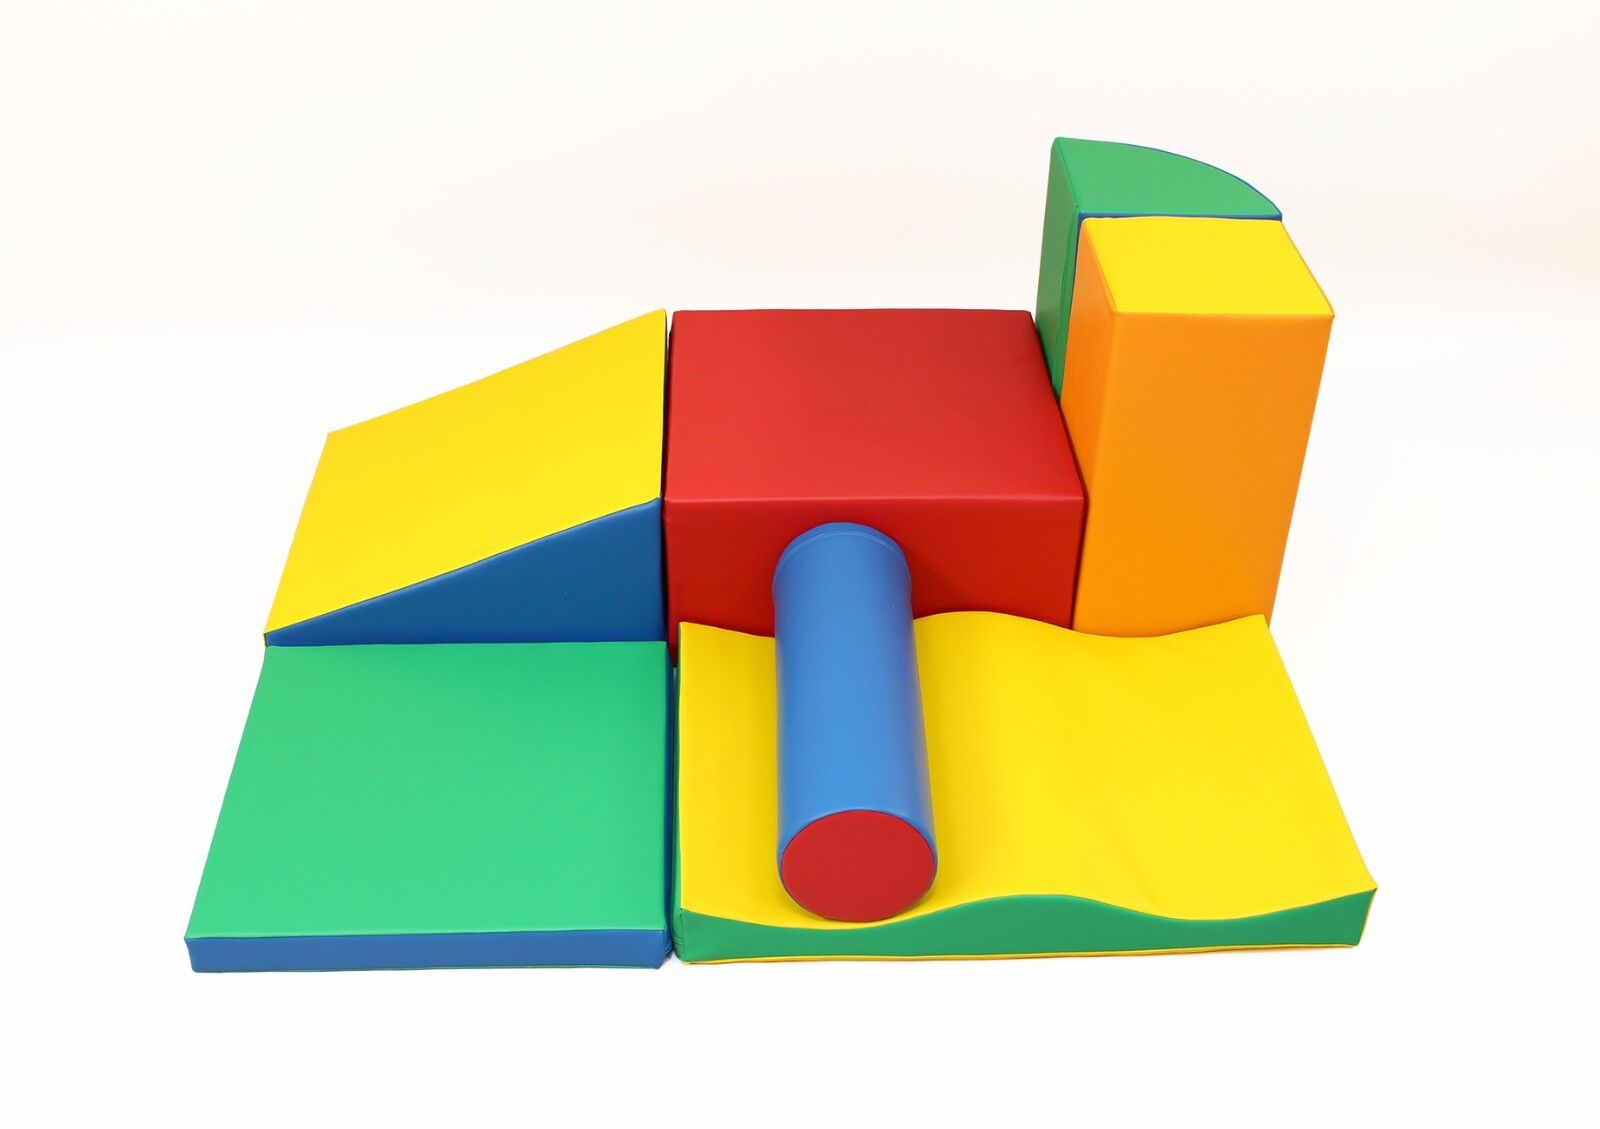 Soft Play Set of 7 Shapes - Large   Soft Play Equipment, Soft Play Shapes   UK